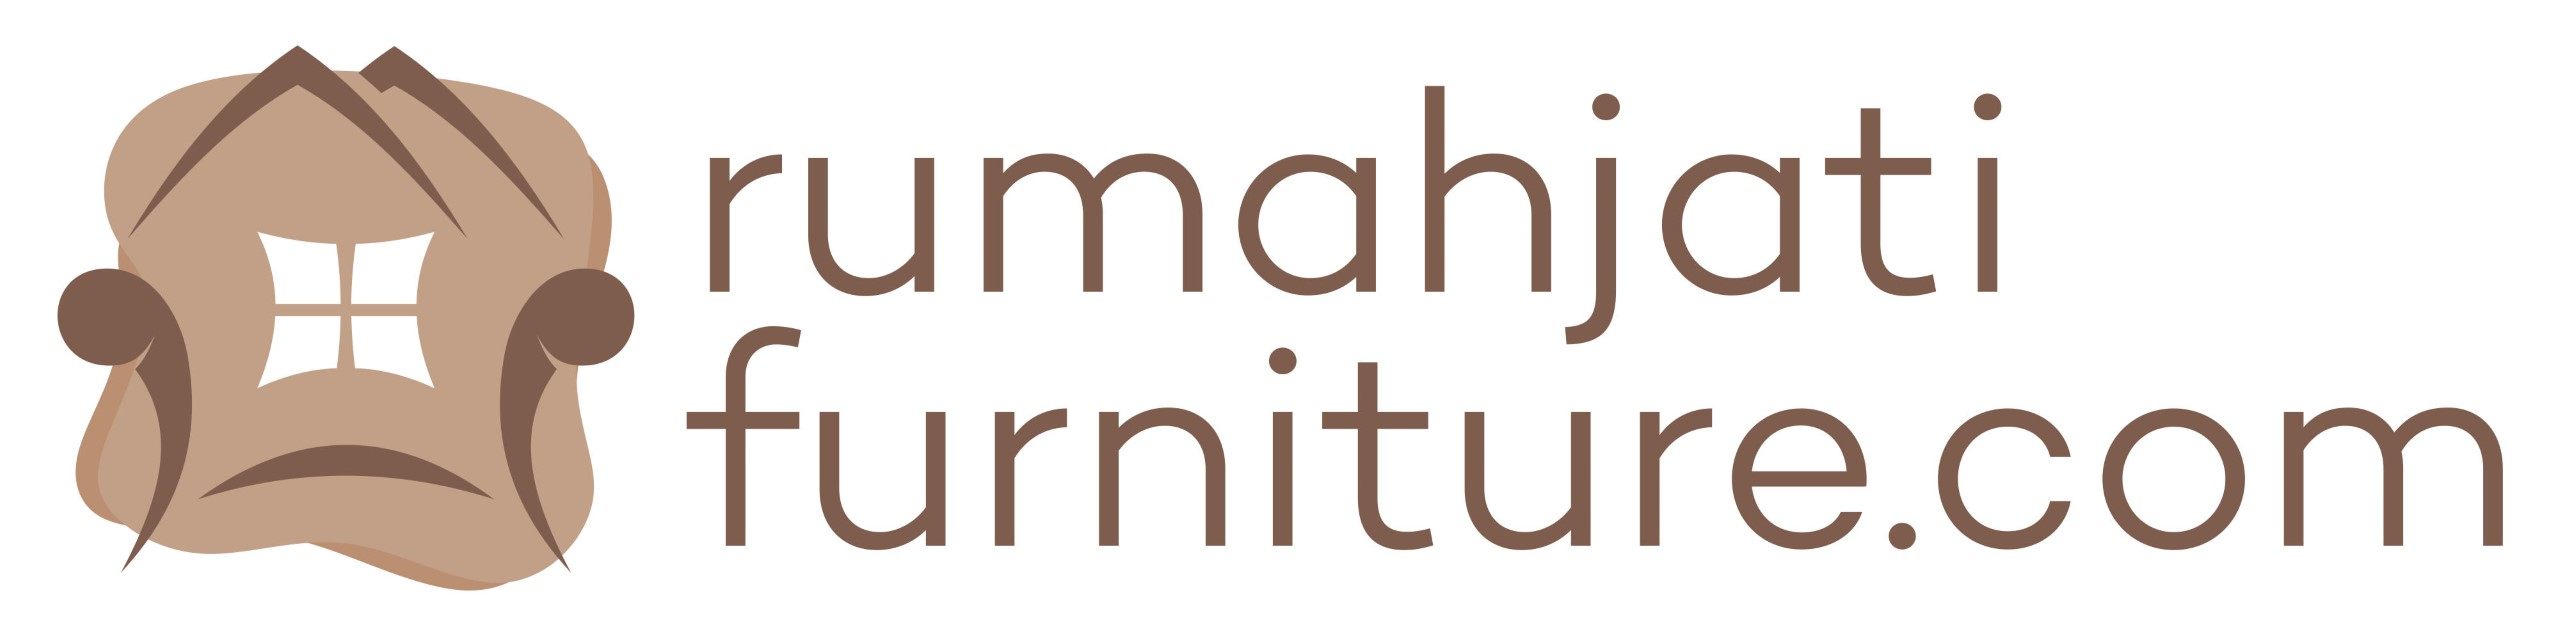 RUMAH JATI FURNITURE